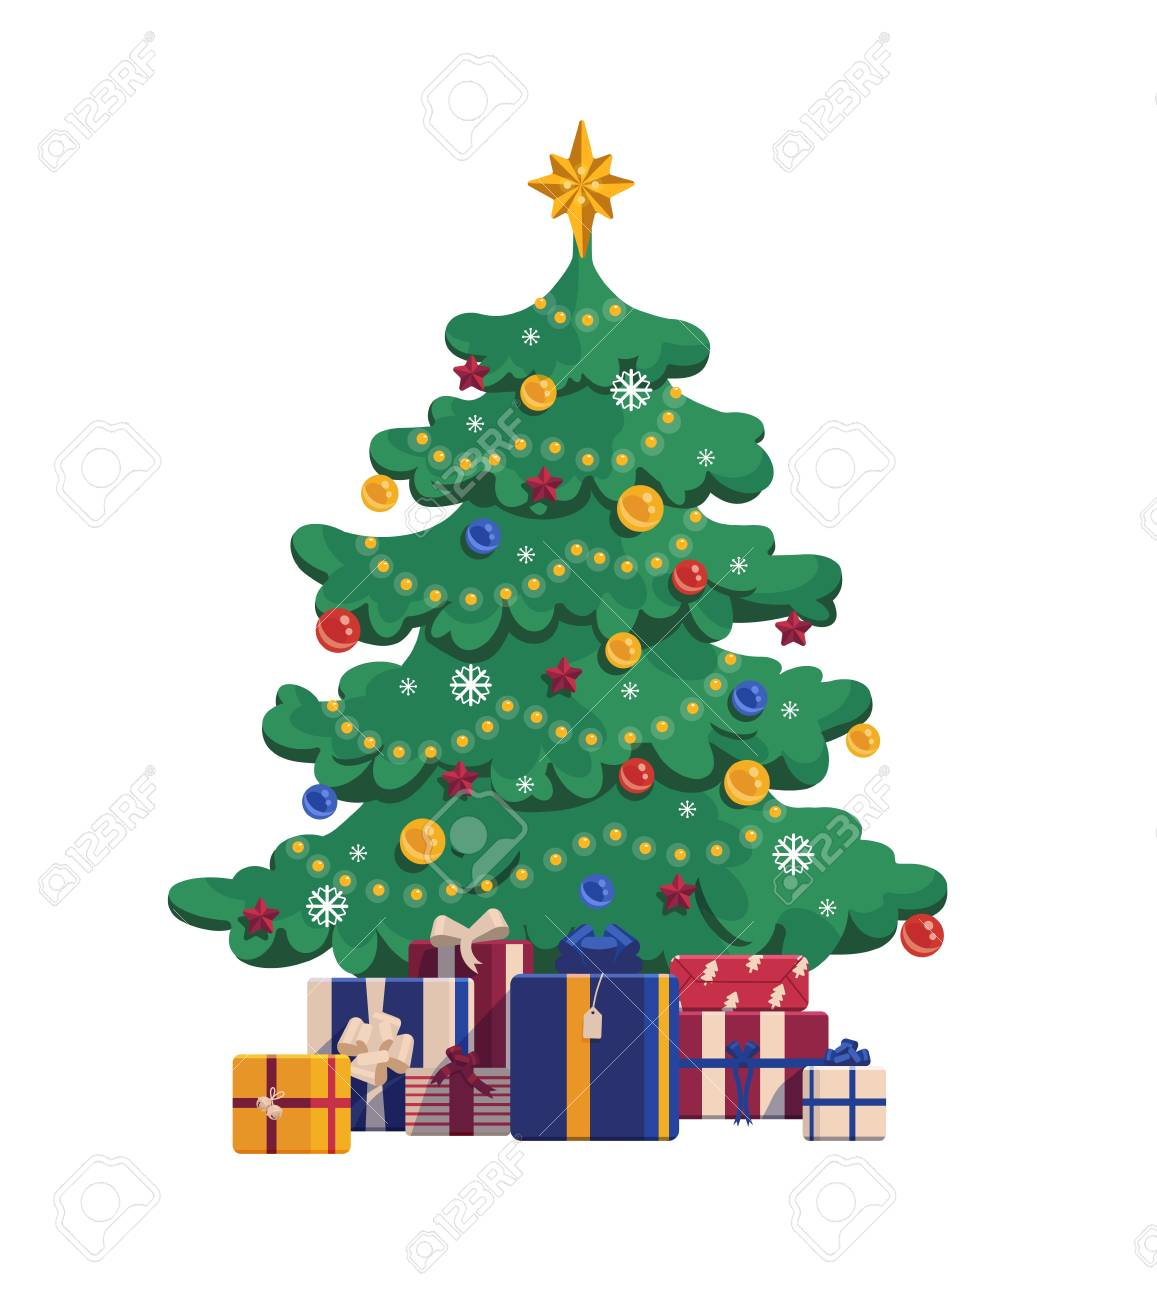 Cartoon Christmas Tree With Gift Boxes Xmas Vector Illustration Royalty Free Cliparts Vectors And Stock Illustration Image 92101509 In your case, feel free to. cartoon christmas tree with gift boxes xmas vector illustration